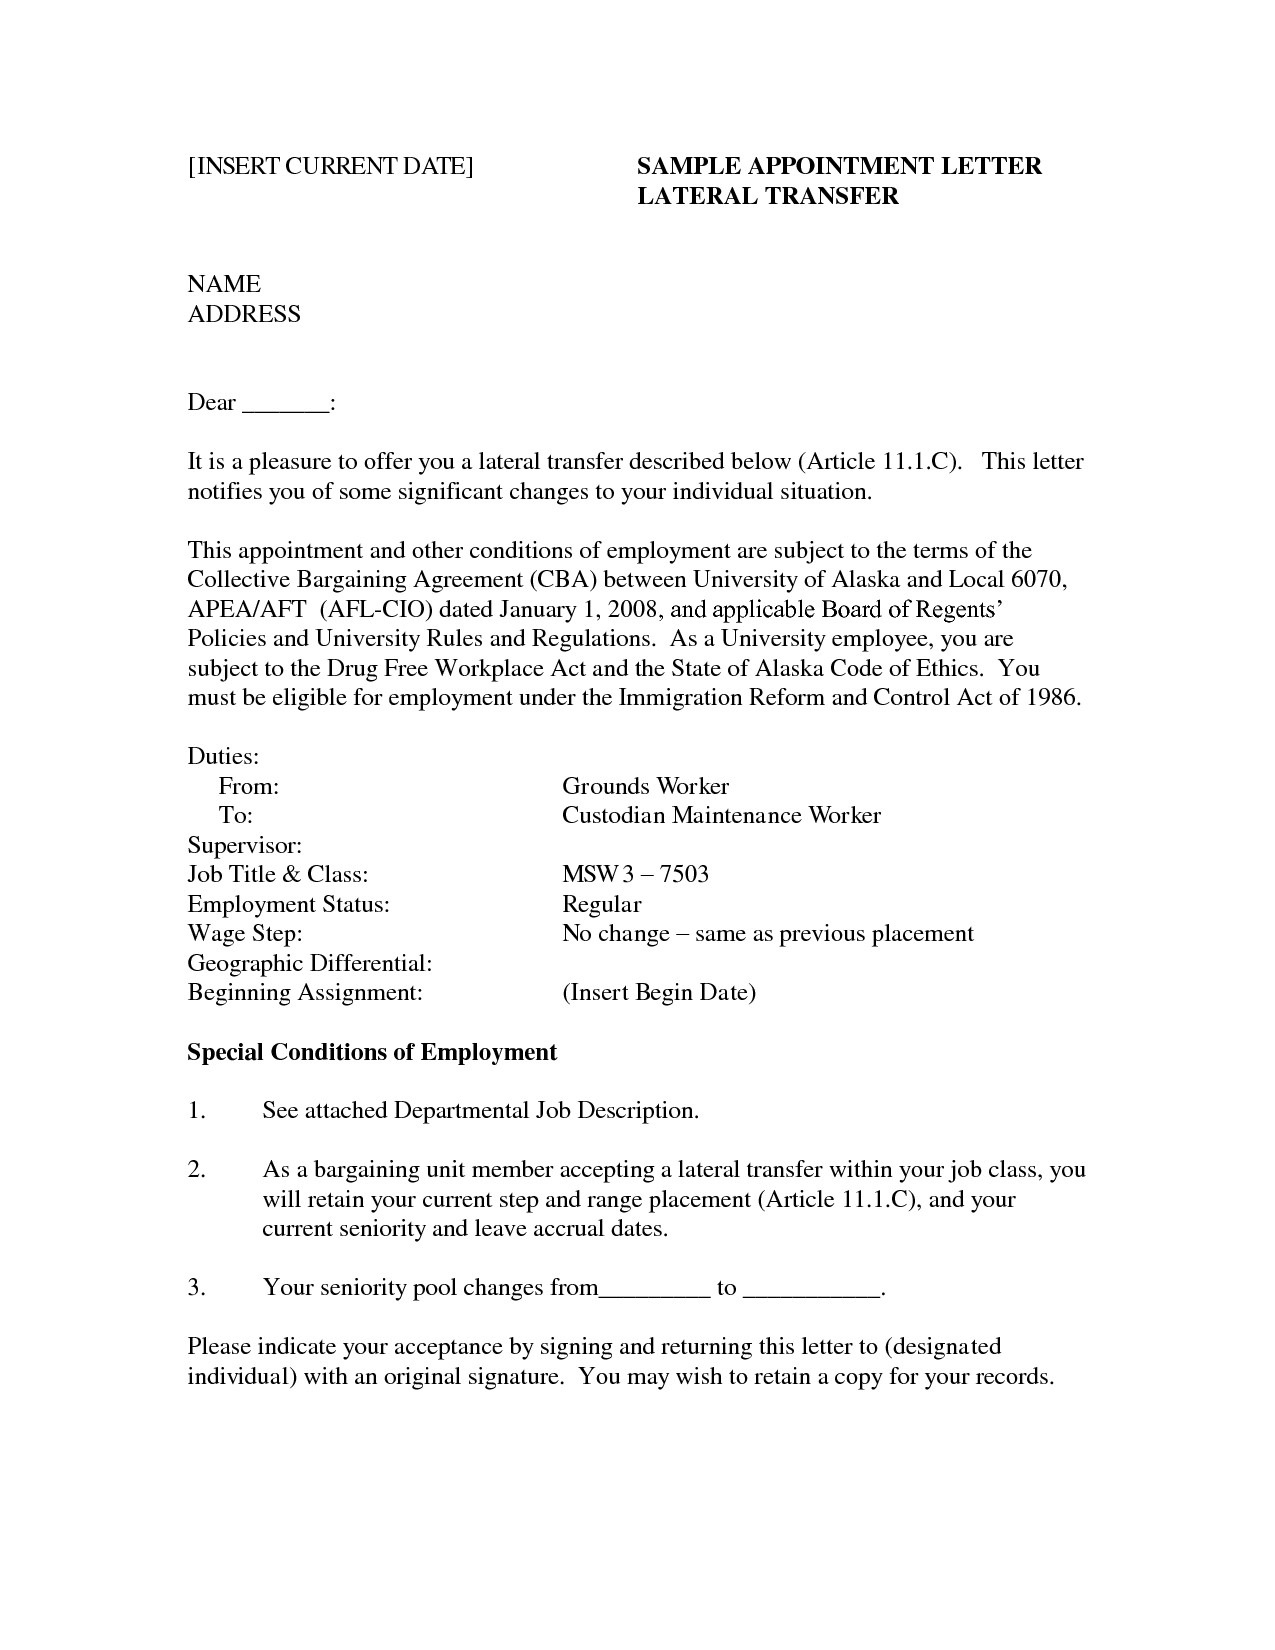 Offer Letter Template Word - Email Resume Cover Letters Luxury Cover Letter Template Word 2014